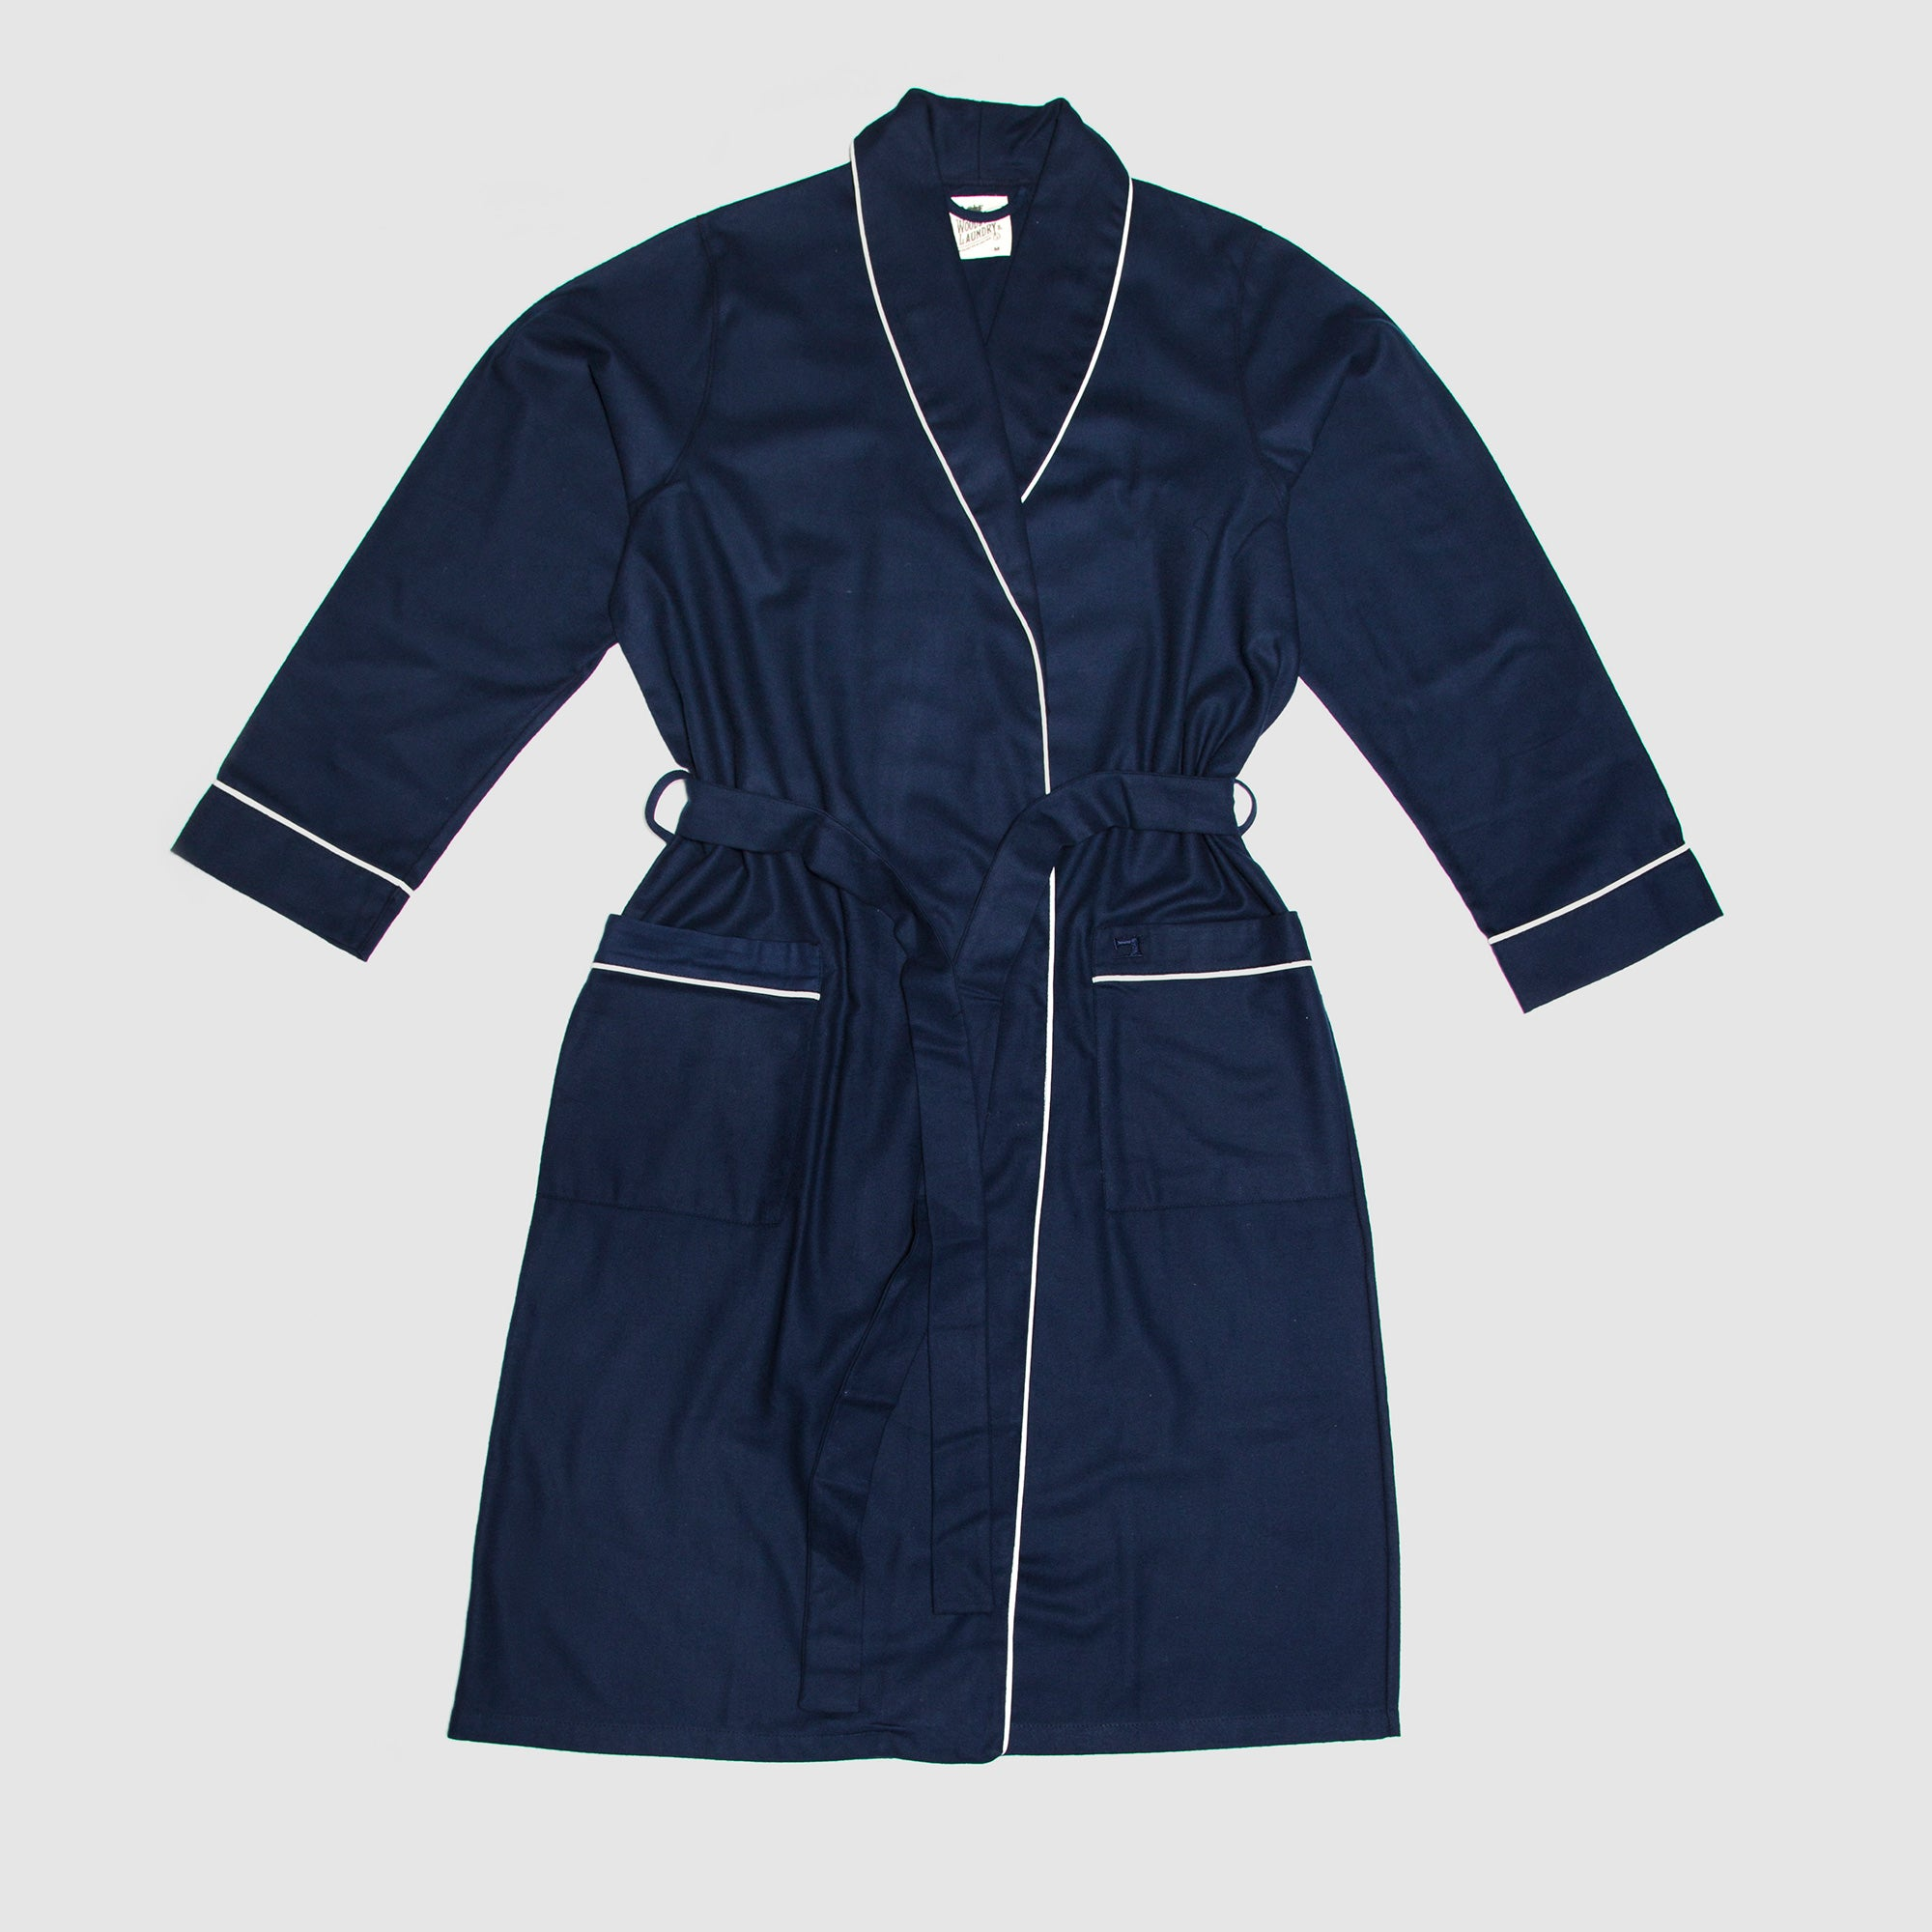 Gown Navy Flannel White Piping - Woodstock Laundry